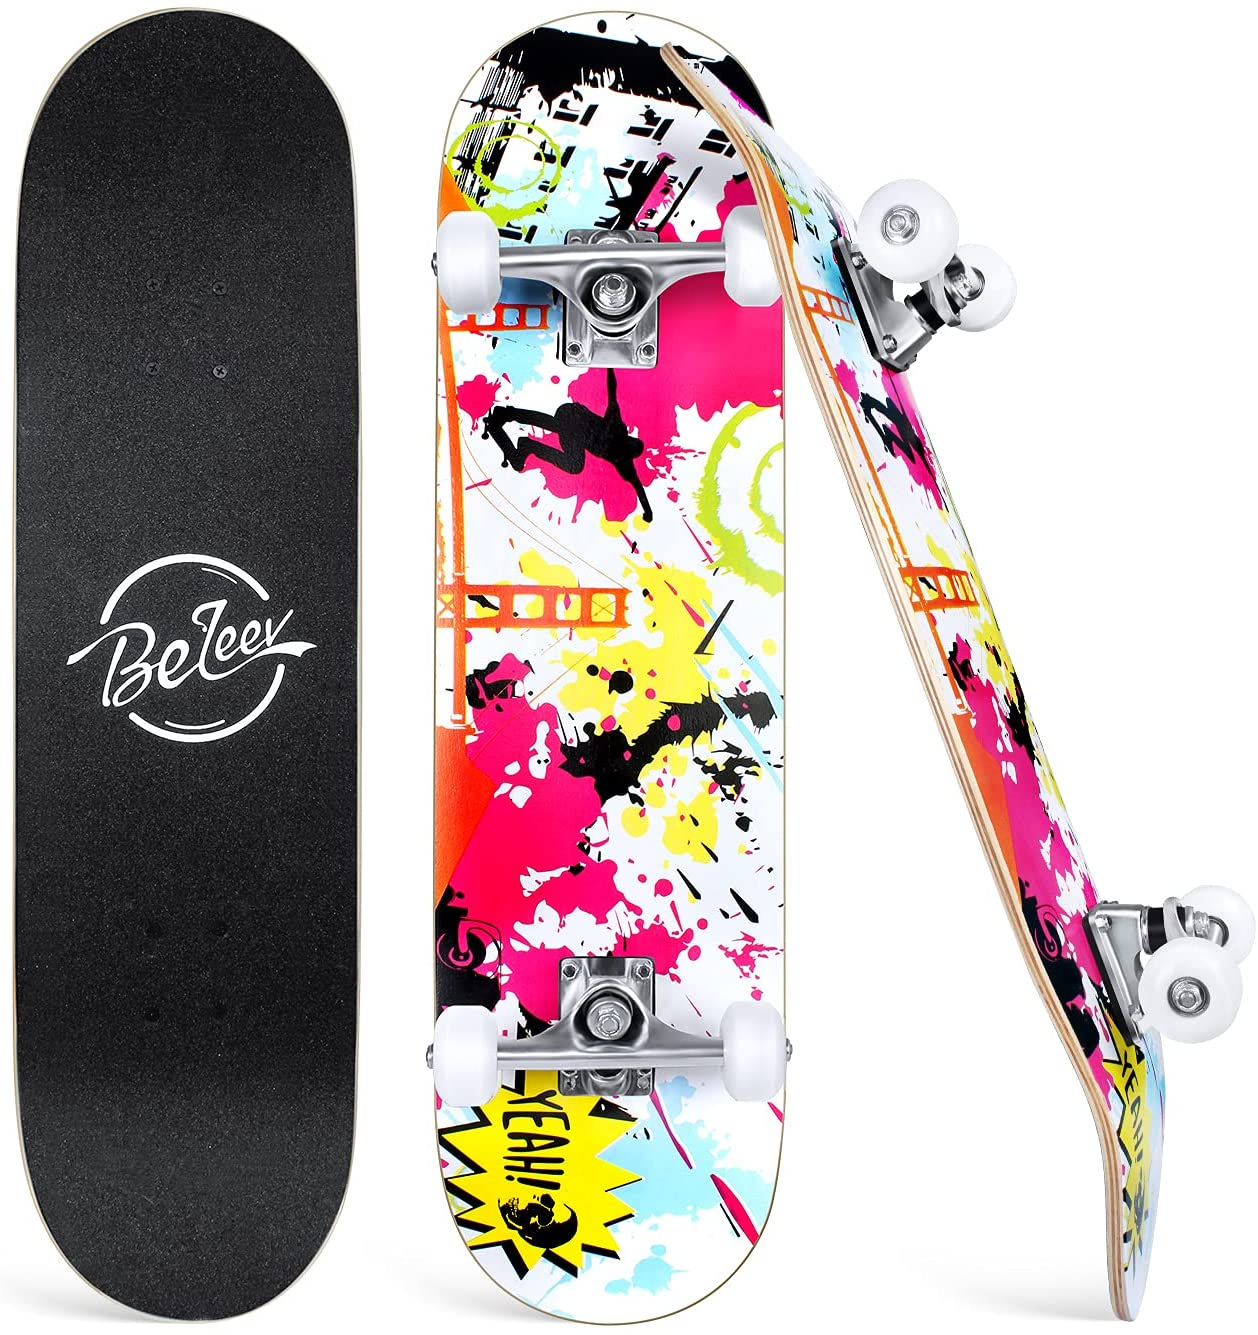 Beleev Skateboards for Beginners, 31 Inch Complete Skateboard for Kids Teens Adults, 7 Layer Canadian Maple Double Kick Deck Concave Cruiser Trick Skateboard (Pink) : Sports & Outdoors